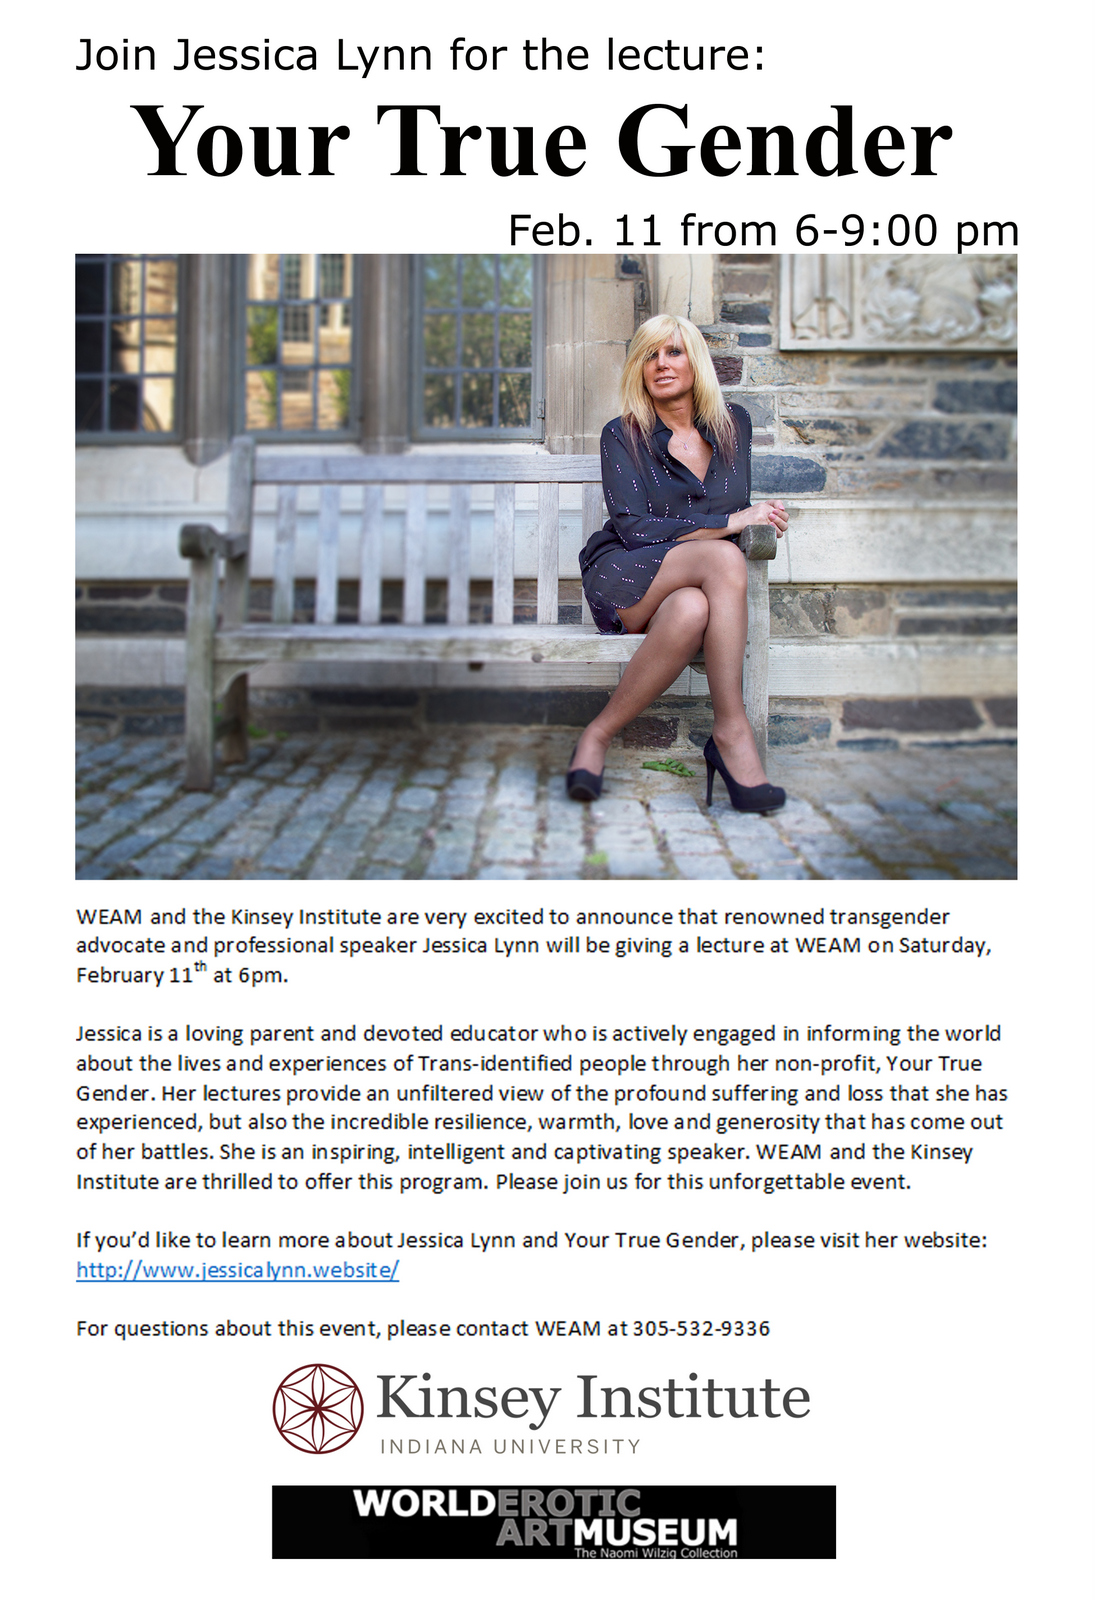 Jessica Lynn, transgender advocate and professional speaker will speak at  WEAM in Miami on Feb 11, 6-9pm. Co-sponsored by the Kinsey Institute.